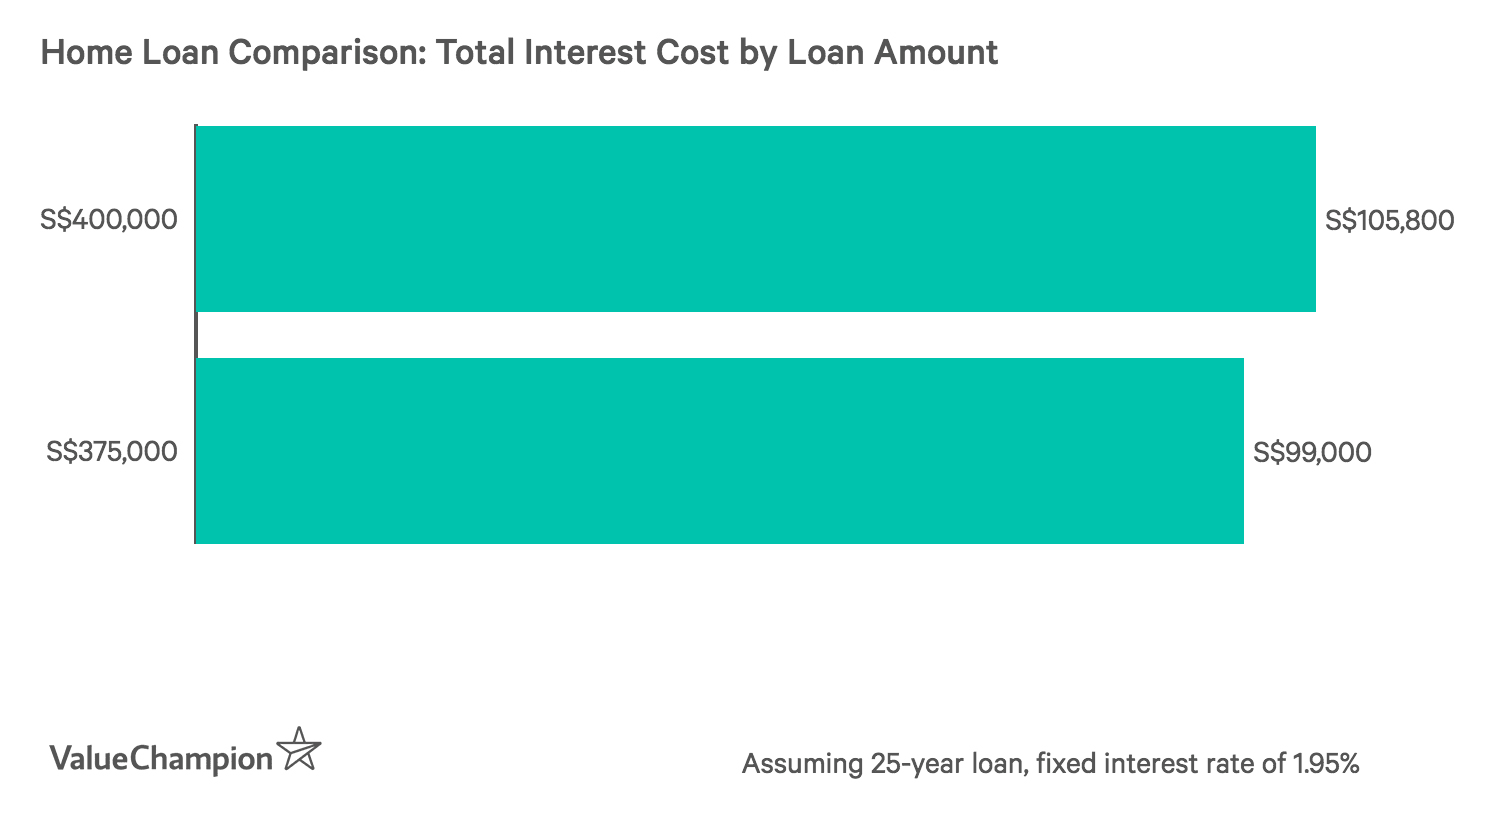 Home Loan Comparison: Total Interest Cost by Loan Amount